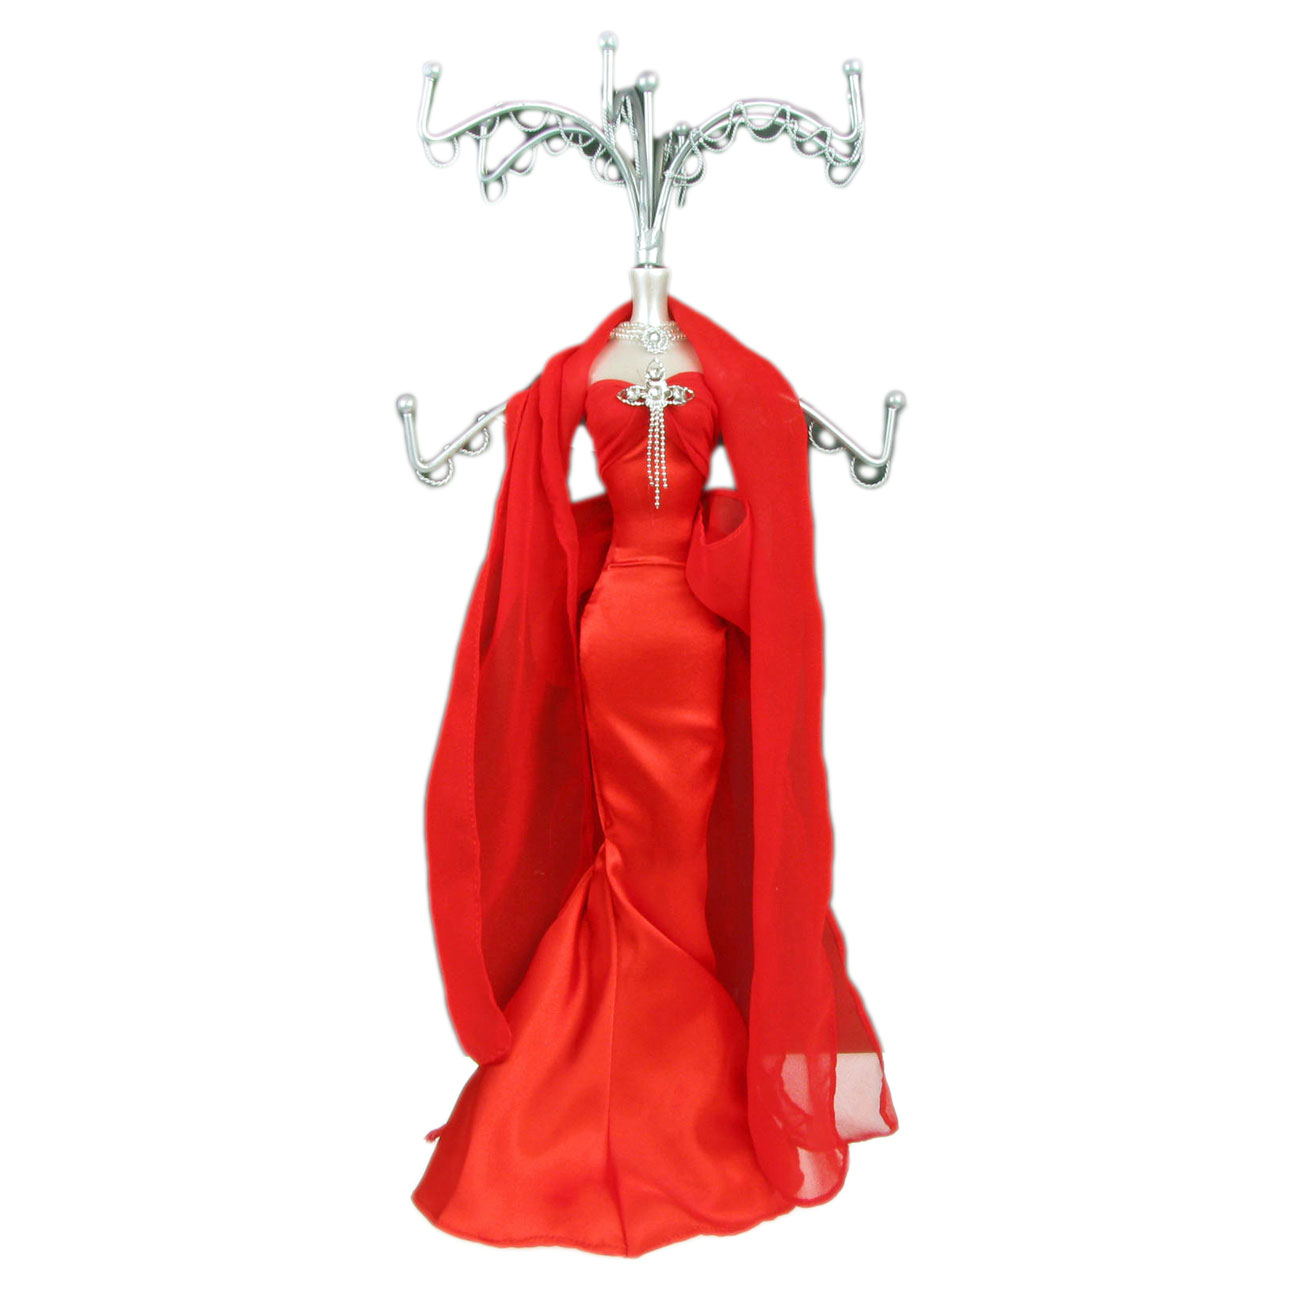 Mannequin Jewellery Stand / Tree Display Necklace Holder with Lady in Red Dress Enlarged Preview